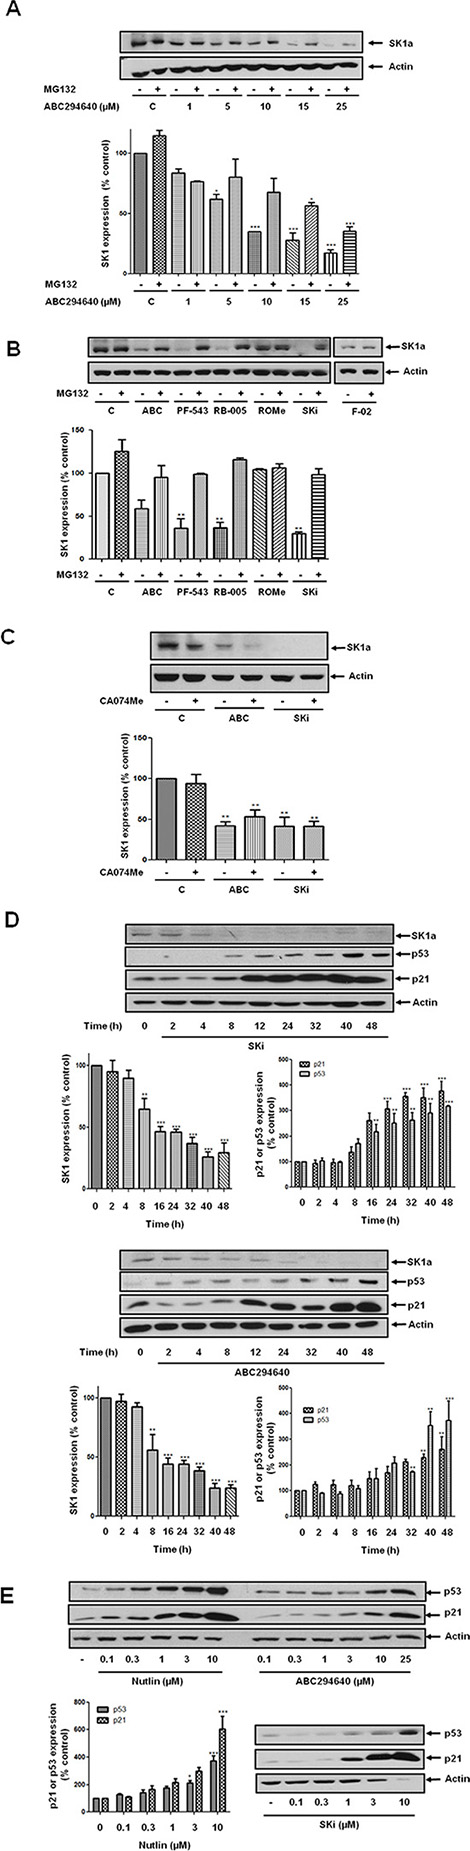 Effect of various SK inhibitors on the proteasomal degradation of SK1a in androgen-independent LNCaP-AI cells.